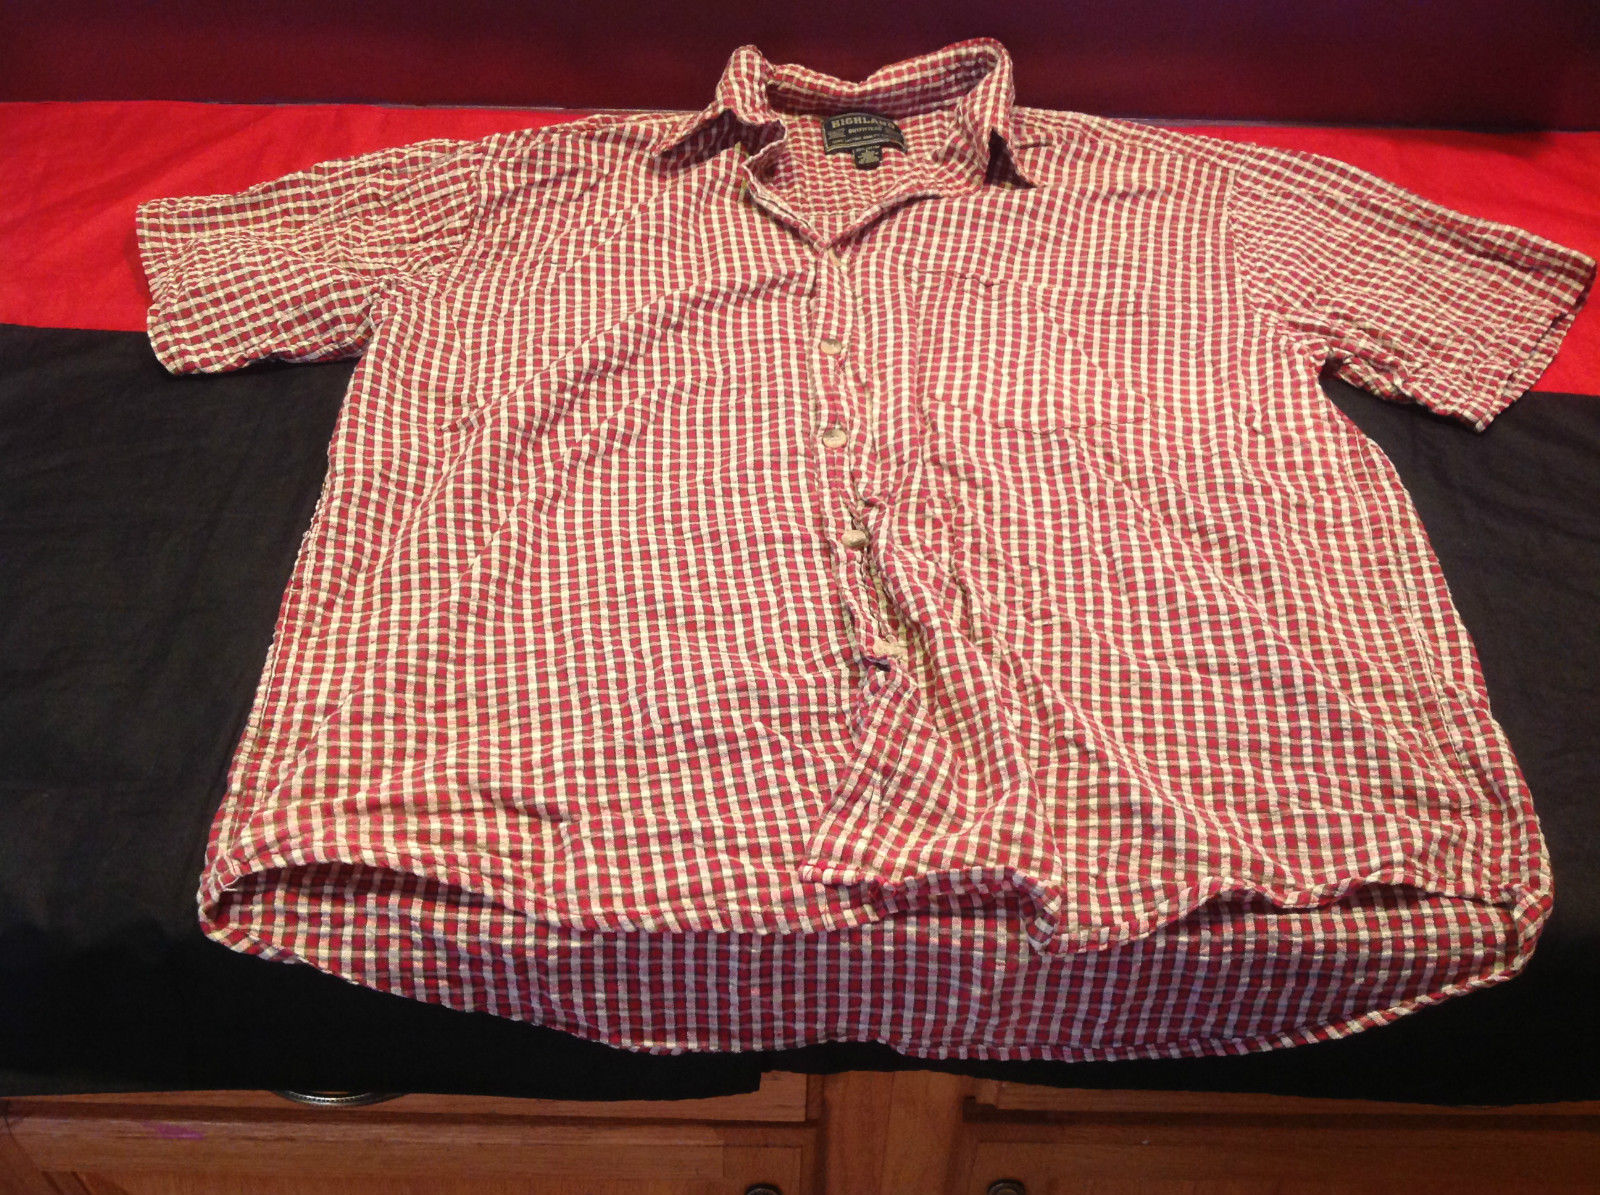 Highlander Outfitters Short Sleeve Red/White/Cream Button Front Shirt Size Large